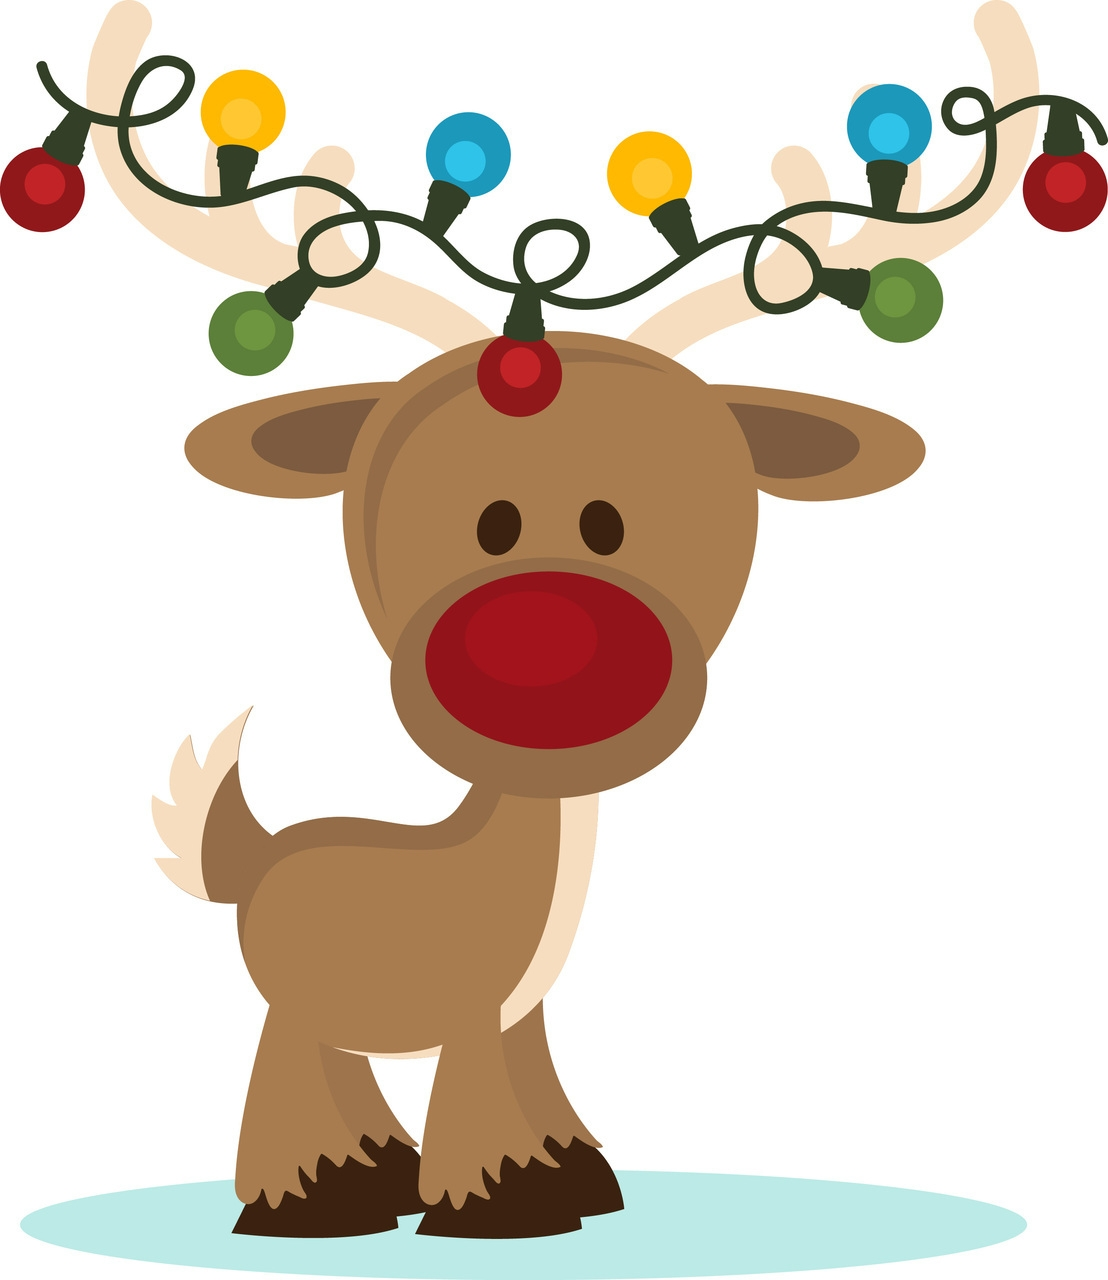 Christmas reindeer clipart Best of Reindeer photos of cute.